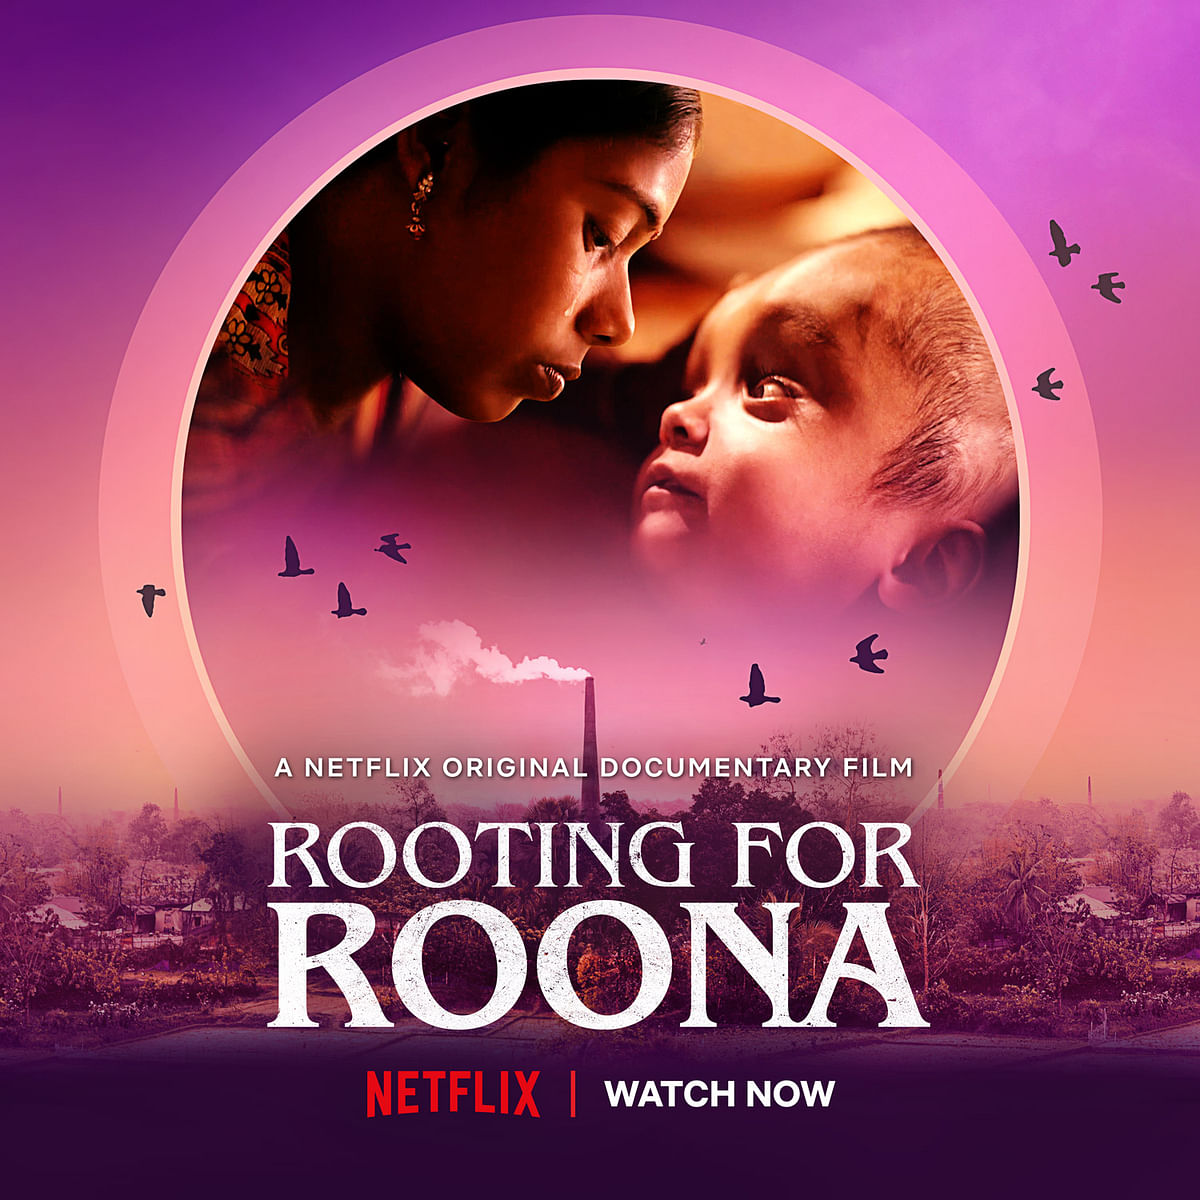 Netflix Documentary 'Rooting For Roona' Chronicles The Life Of A Brave Girl With Hydrocephalus